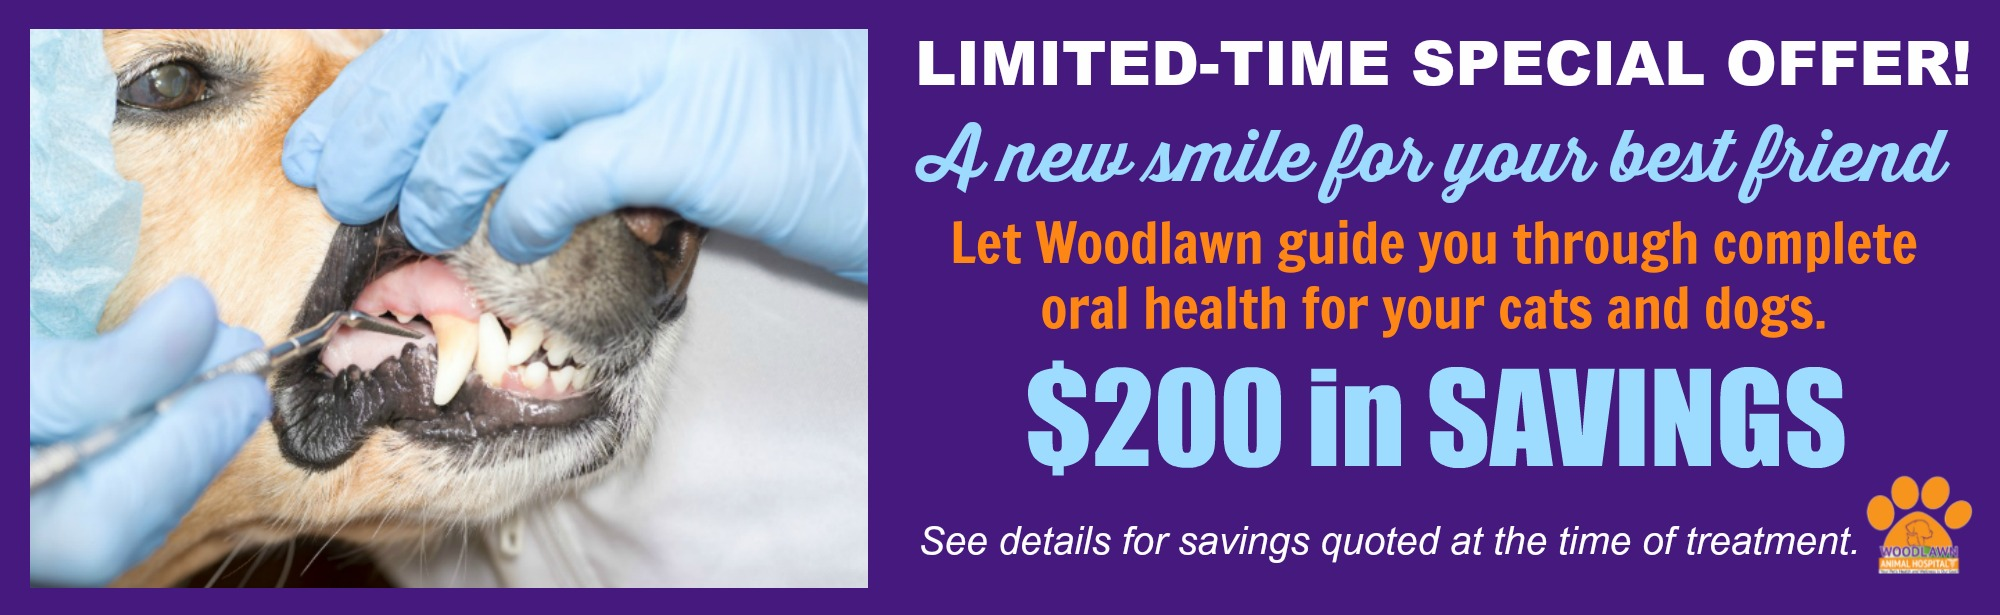 Special offers from Woodlawn for Dental services